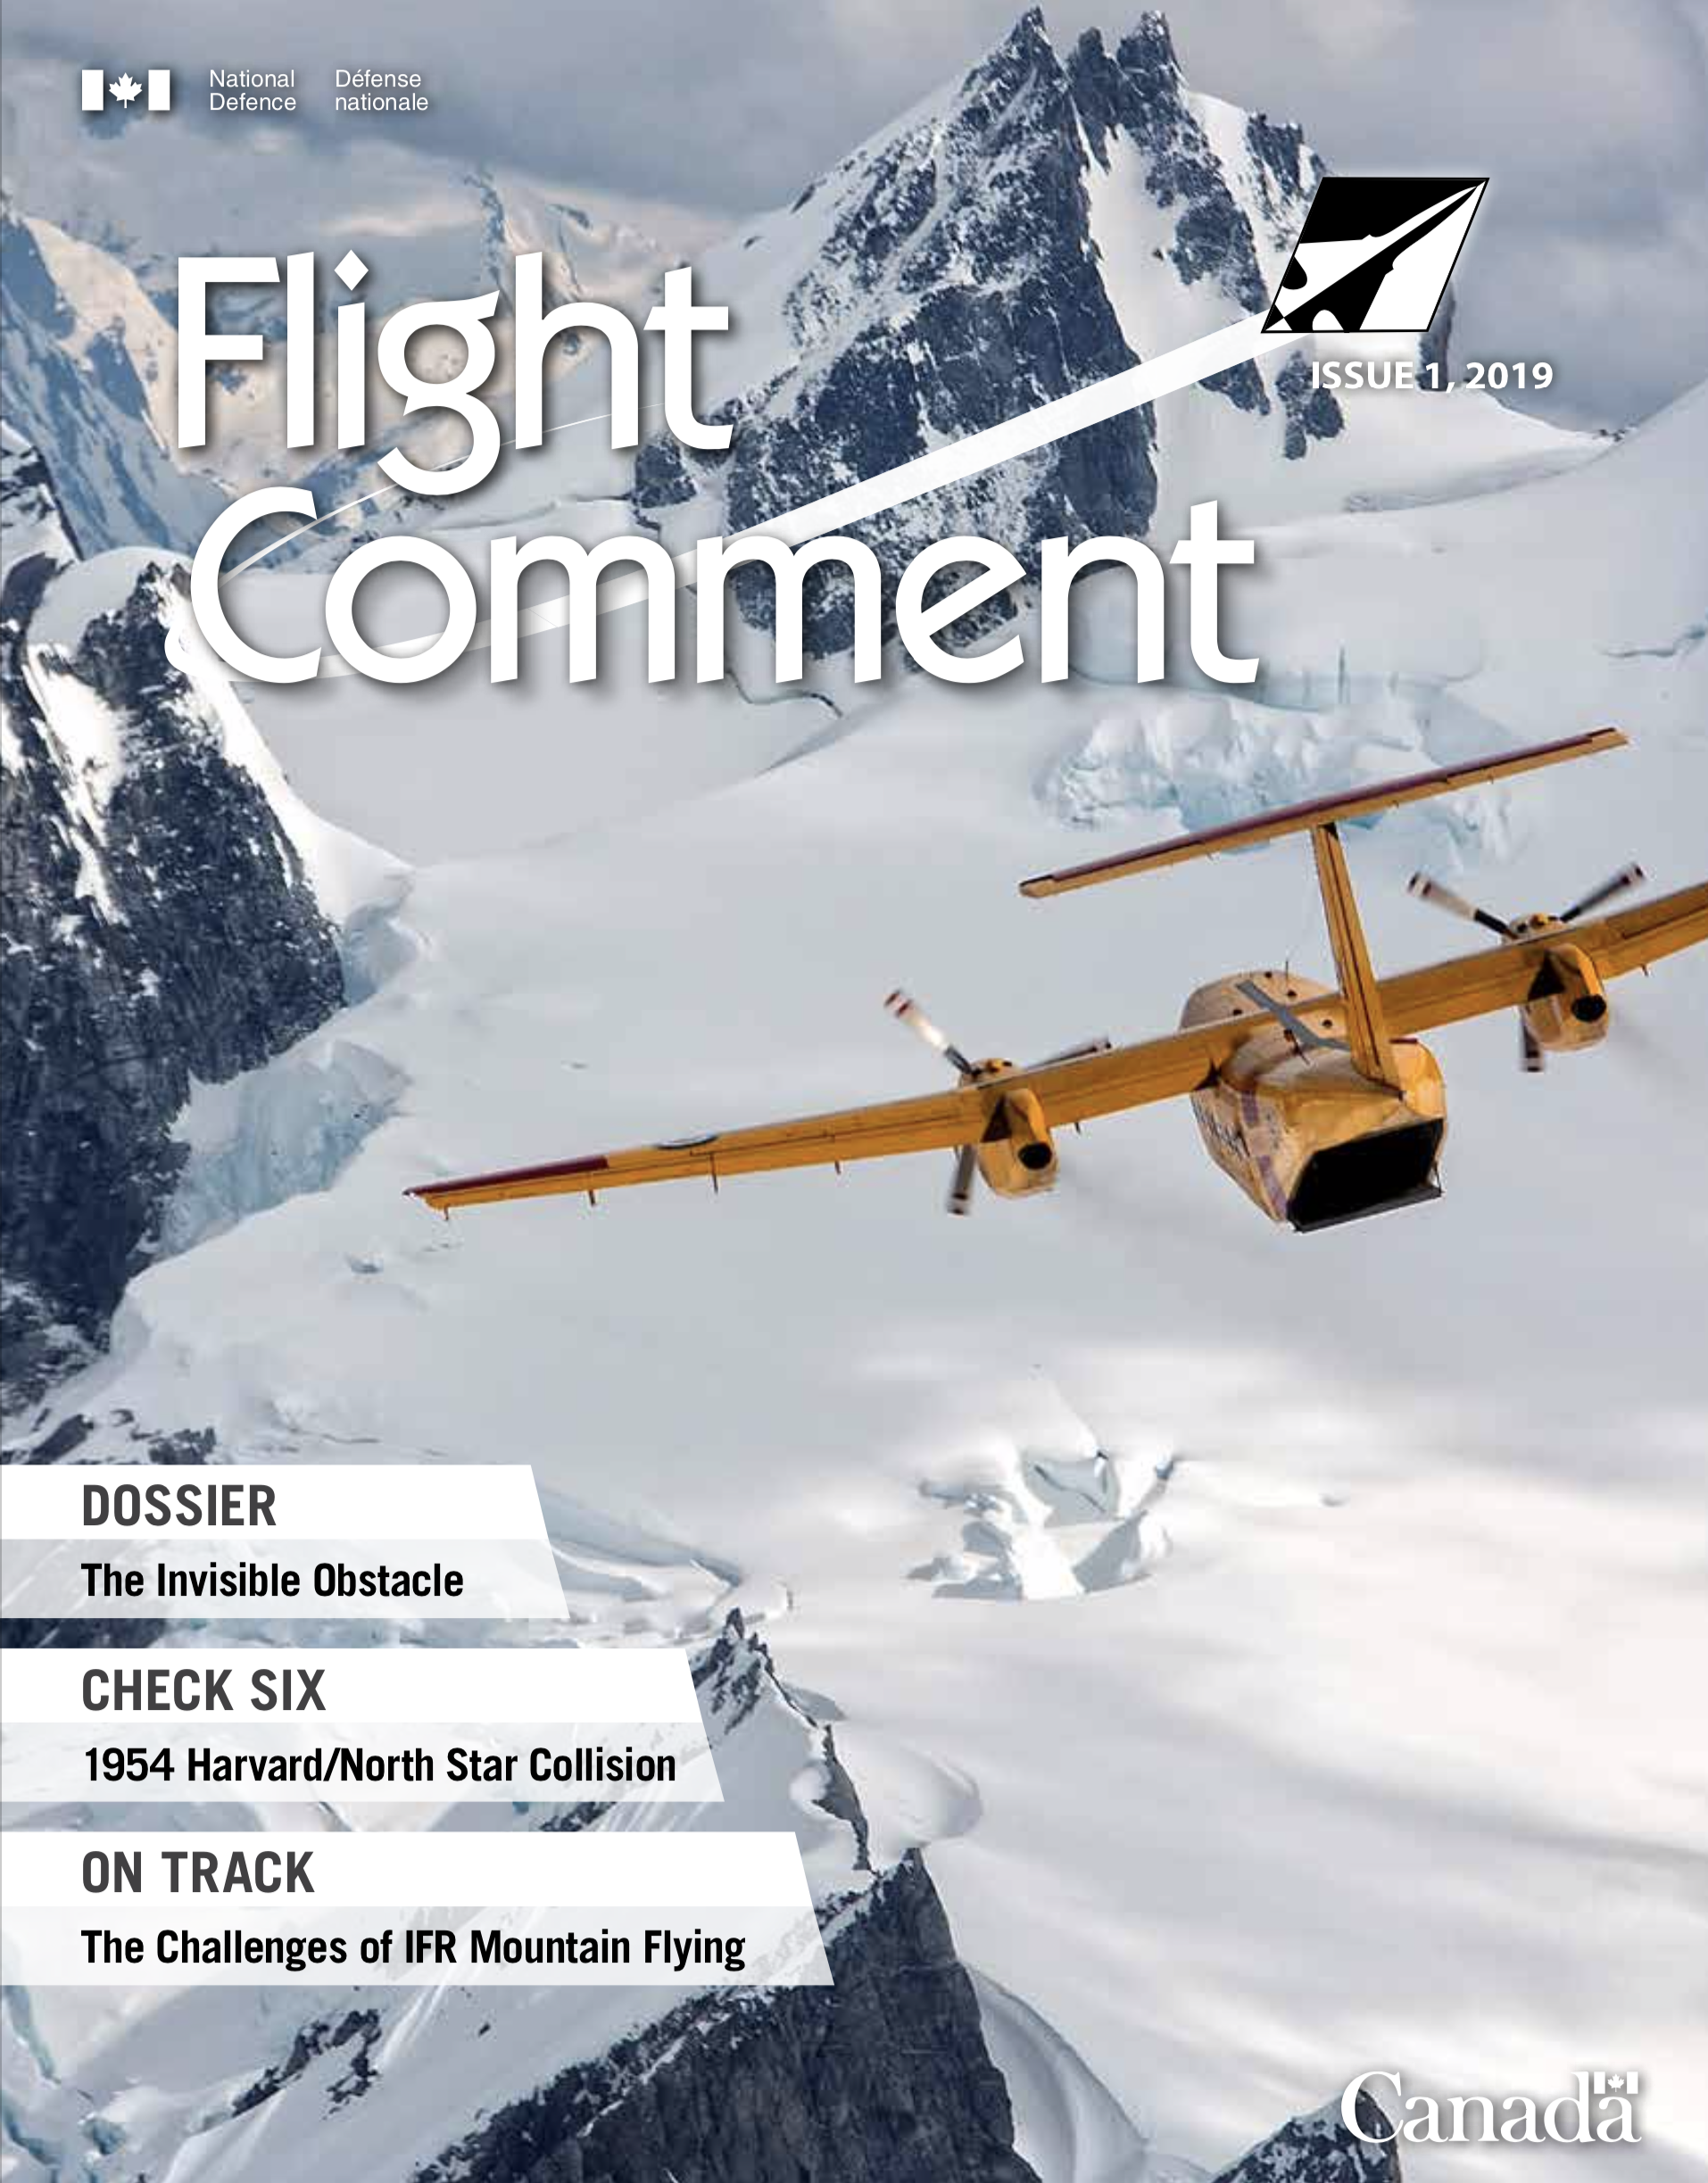 Issue 1, 2019